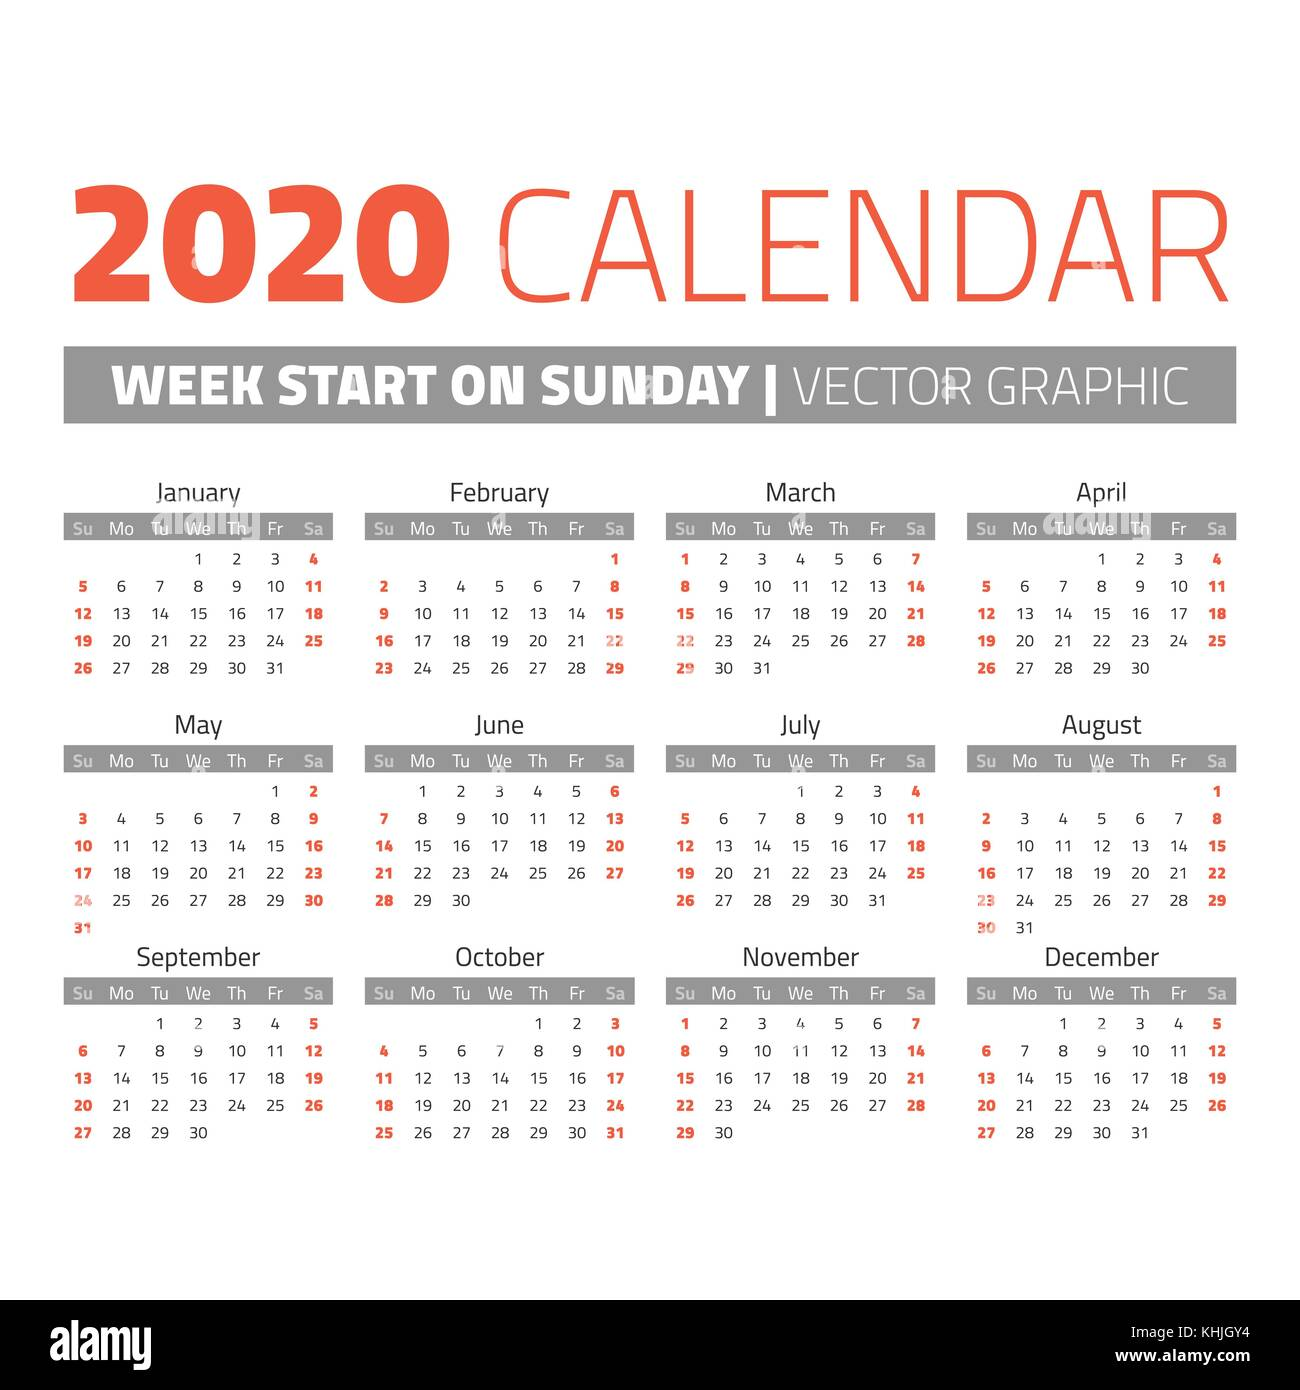 Weeks Of The Year Calendar 2020 Simple 2020 year calendar. Weeks start on sunday Stock Vector Art